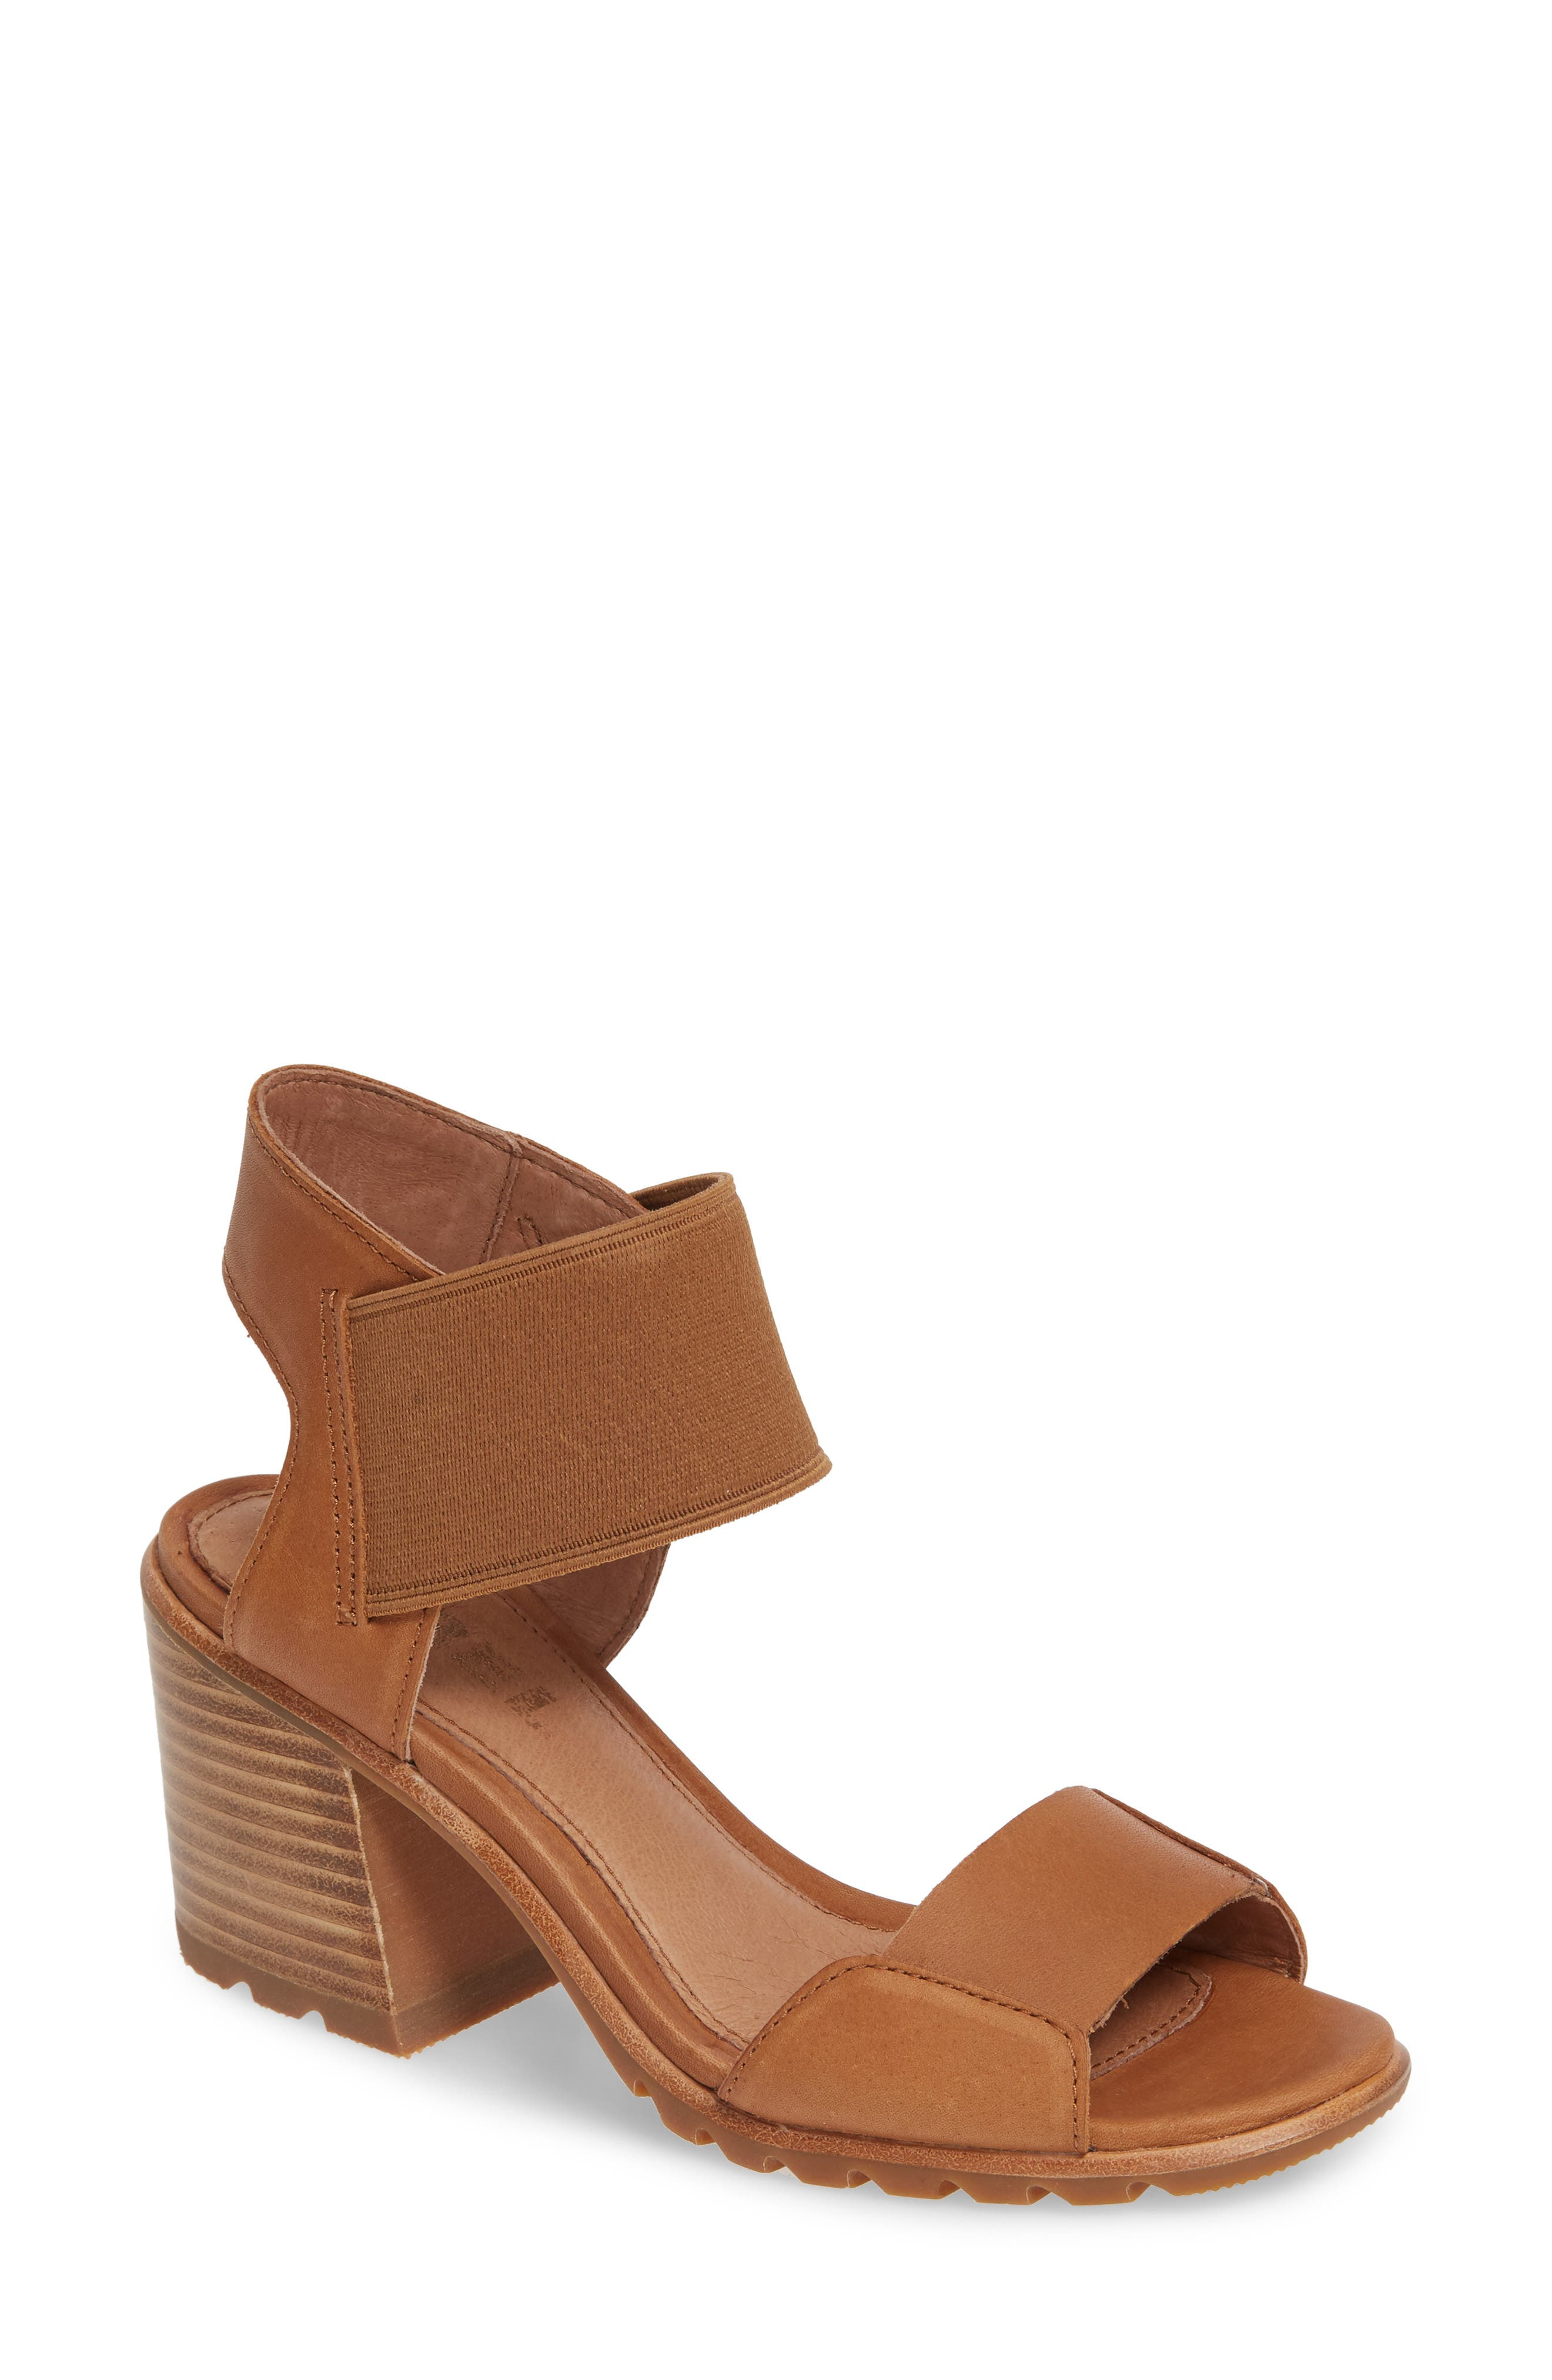 Sorel Nadia Sandal- Brown